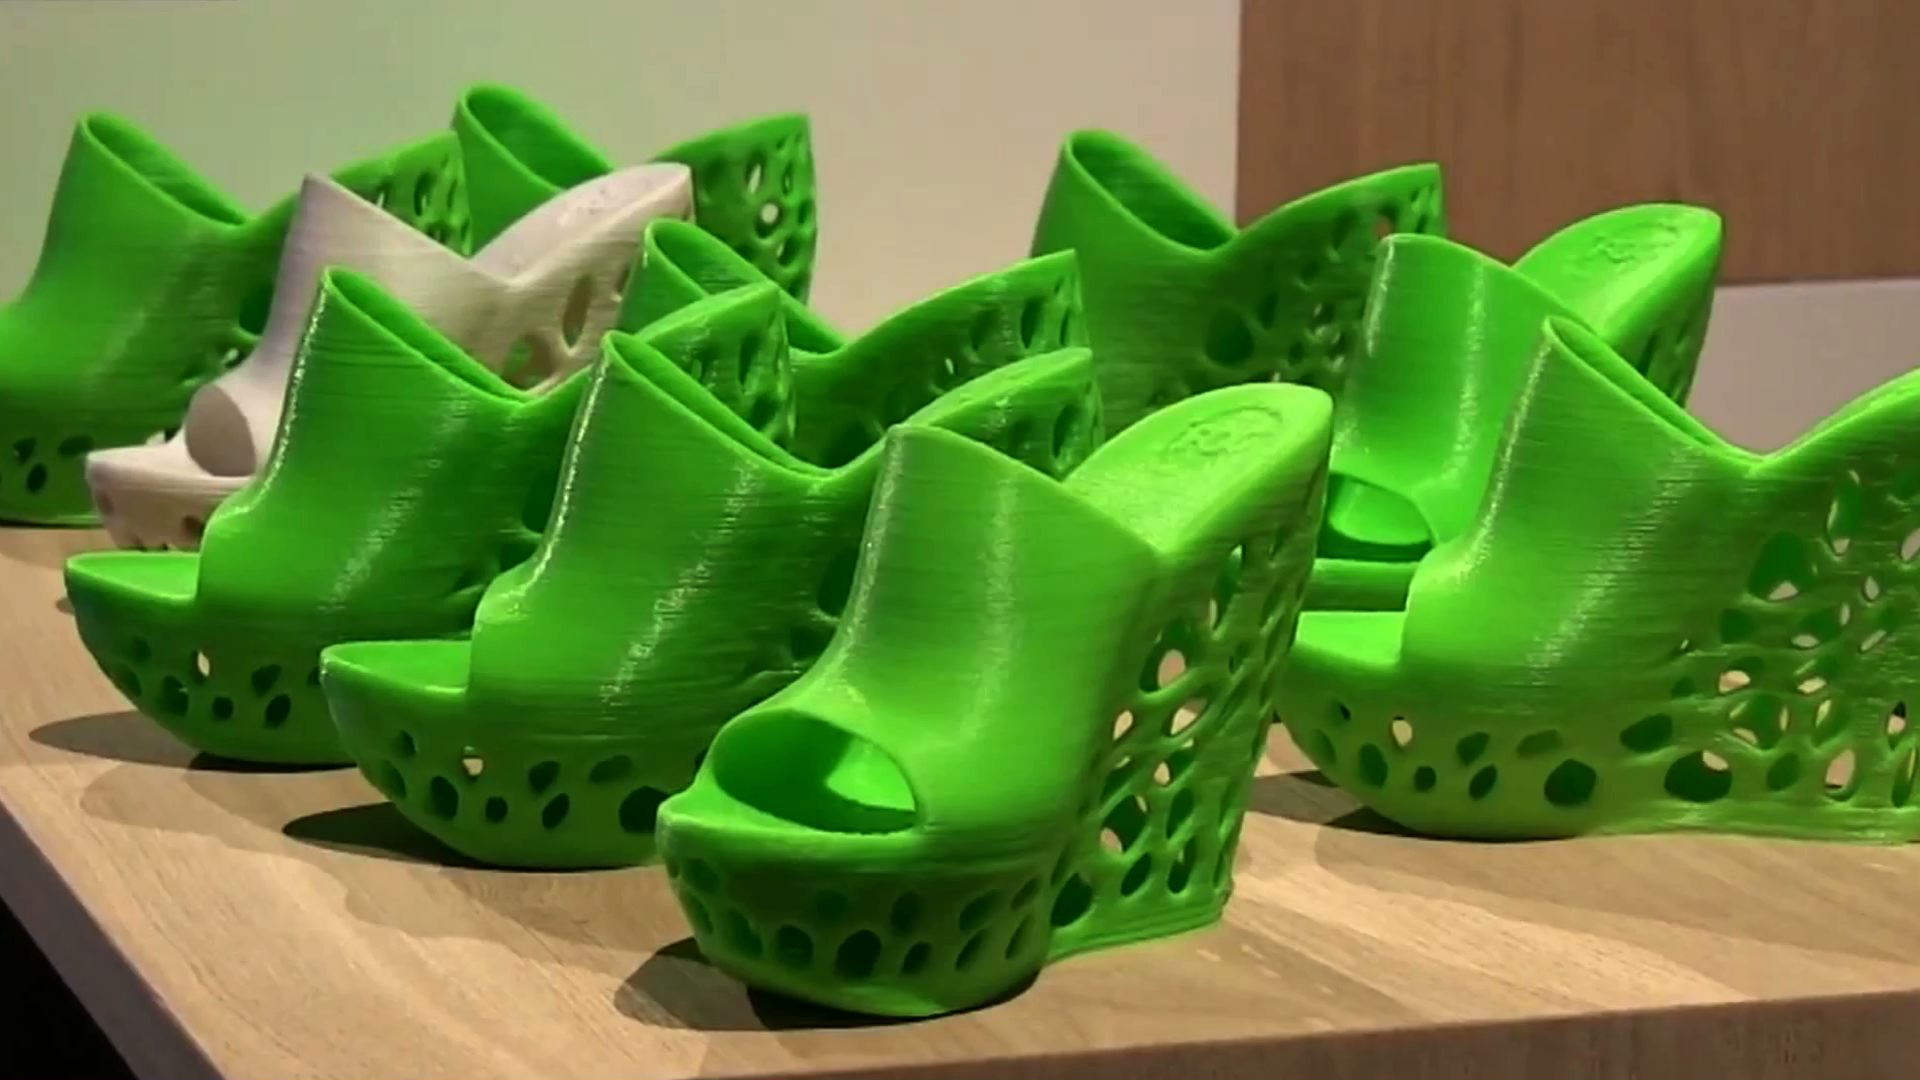 Will 3D Printing Change the World? | Off Book